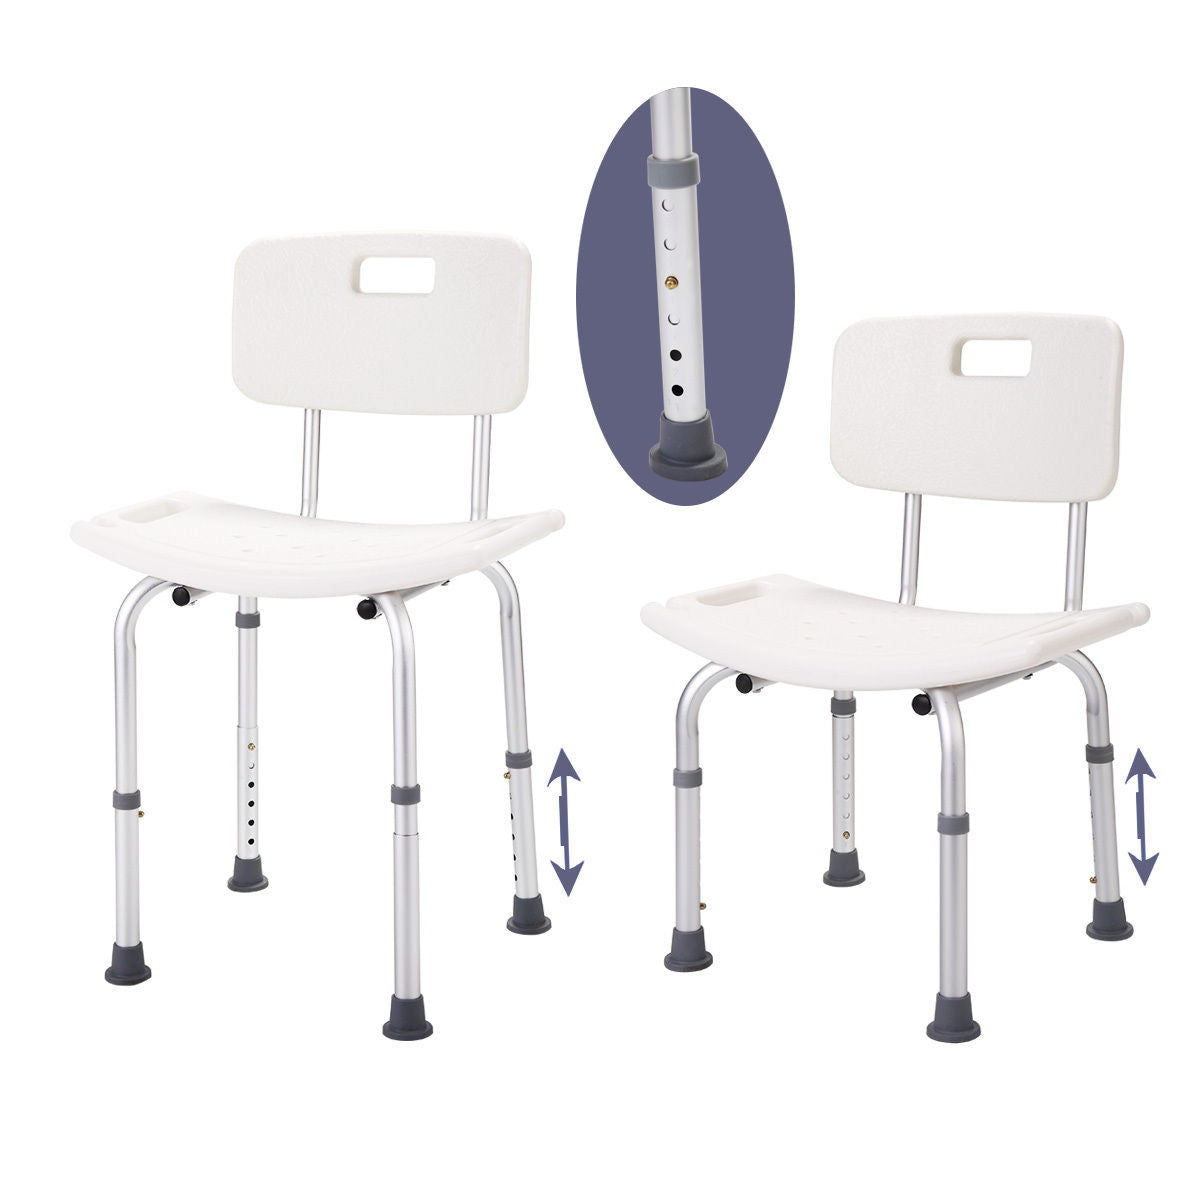 Height Adjustable Medical Shower Chair Bath Tub Bench Stool Seat ...